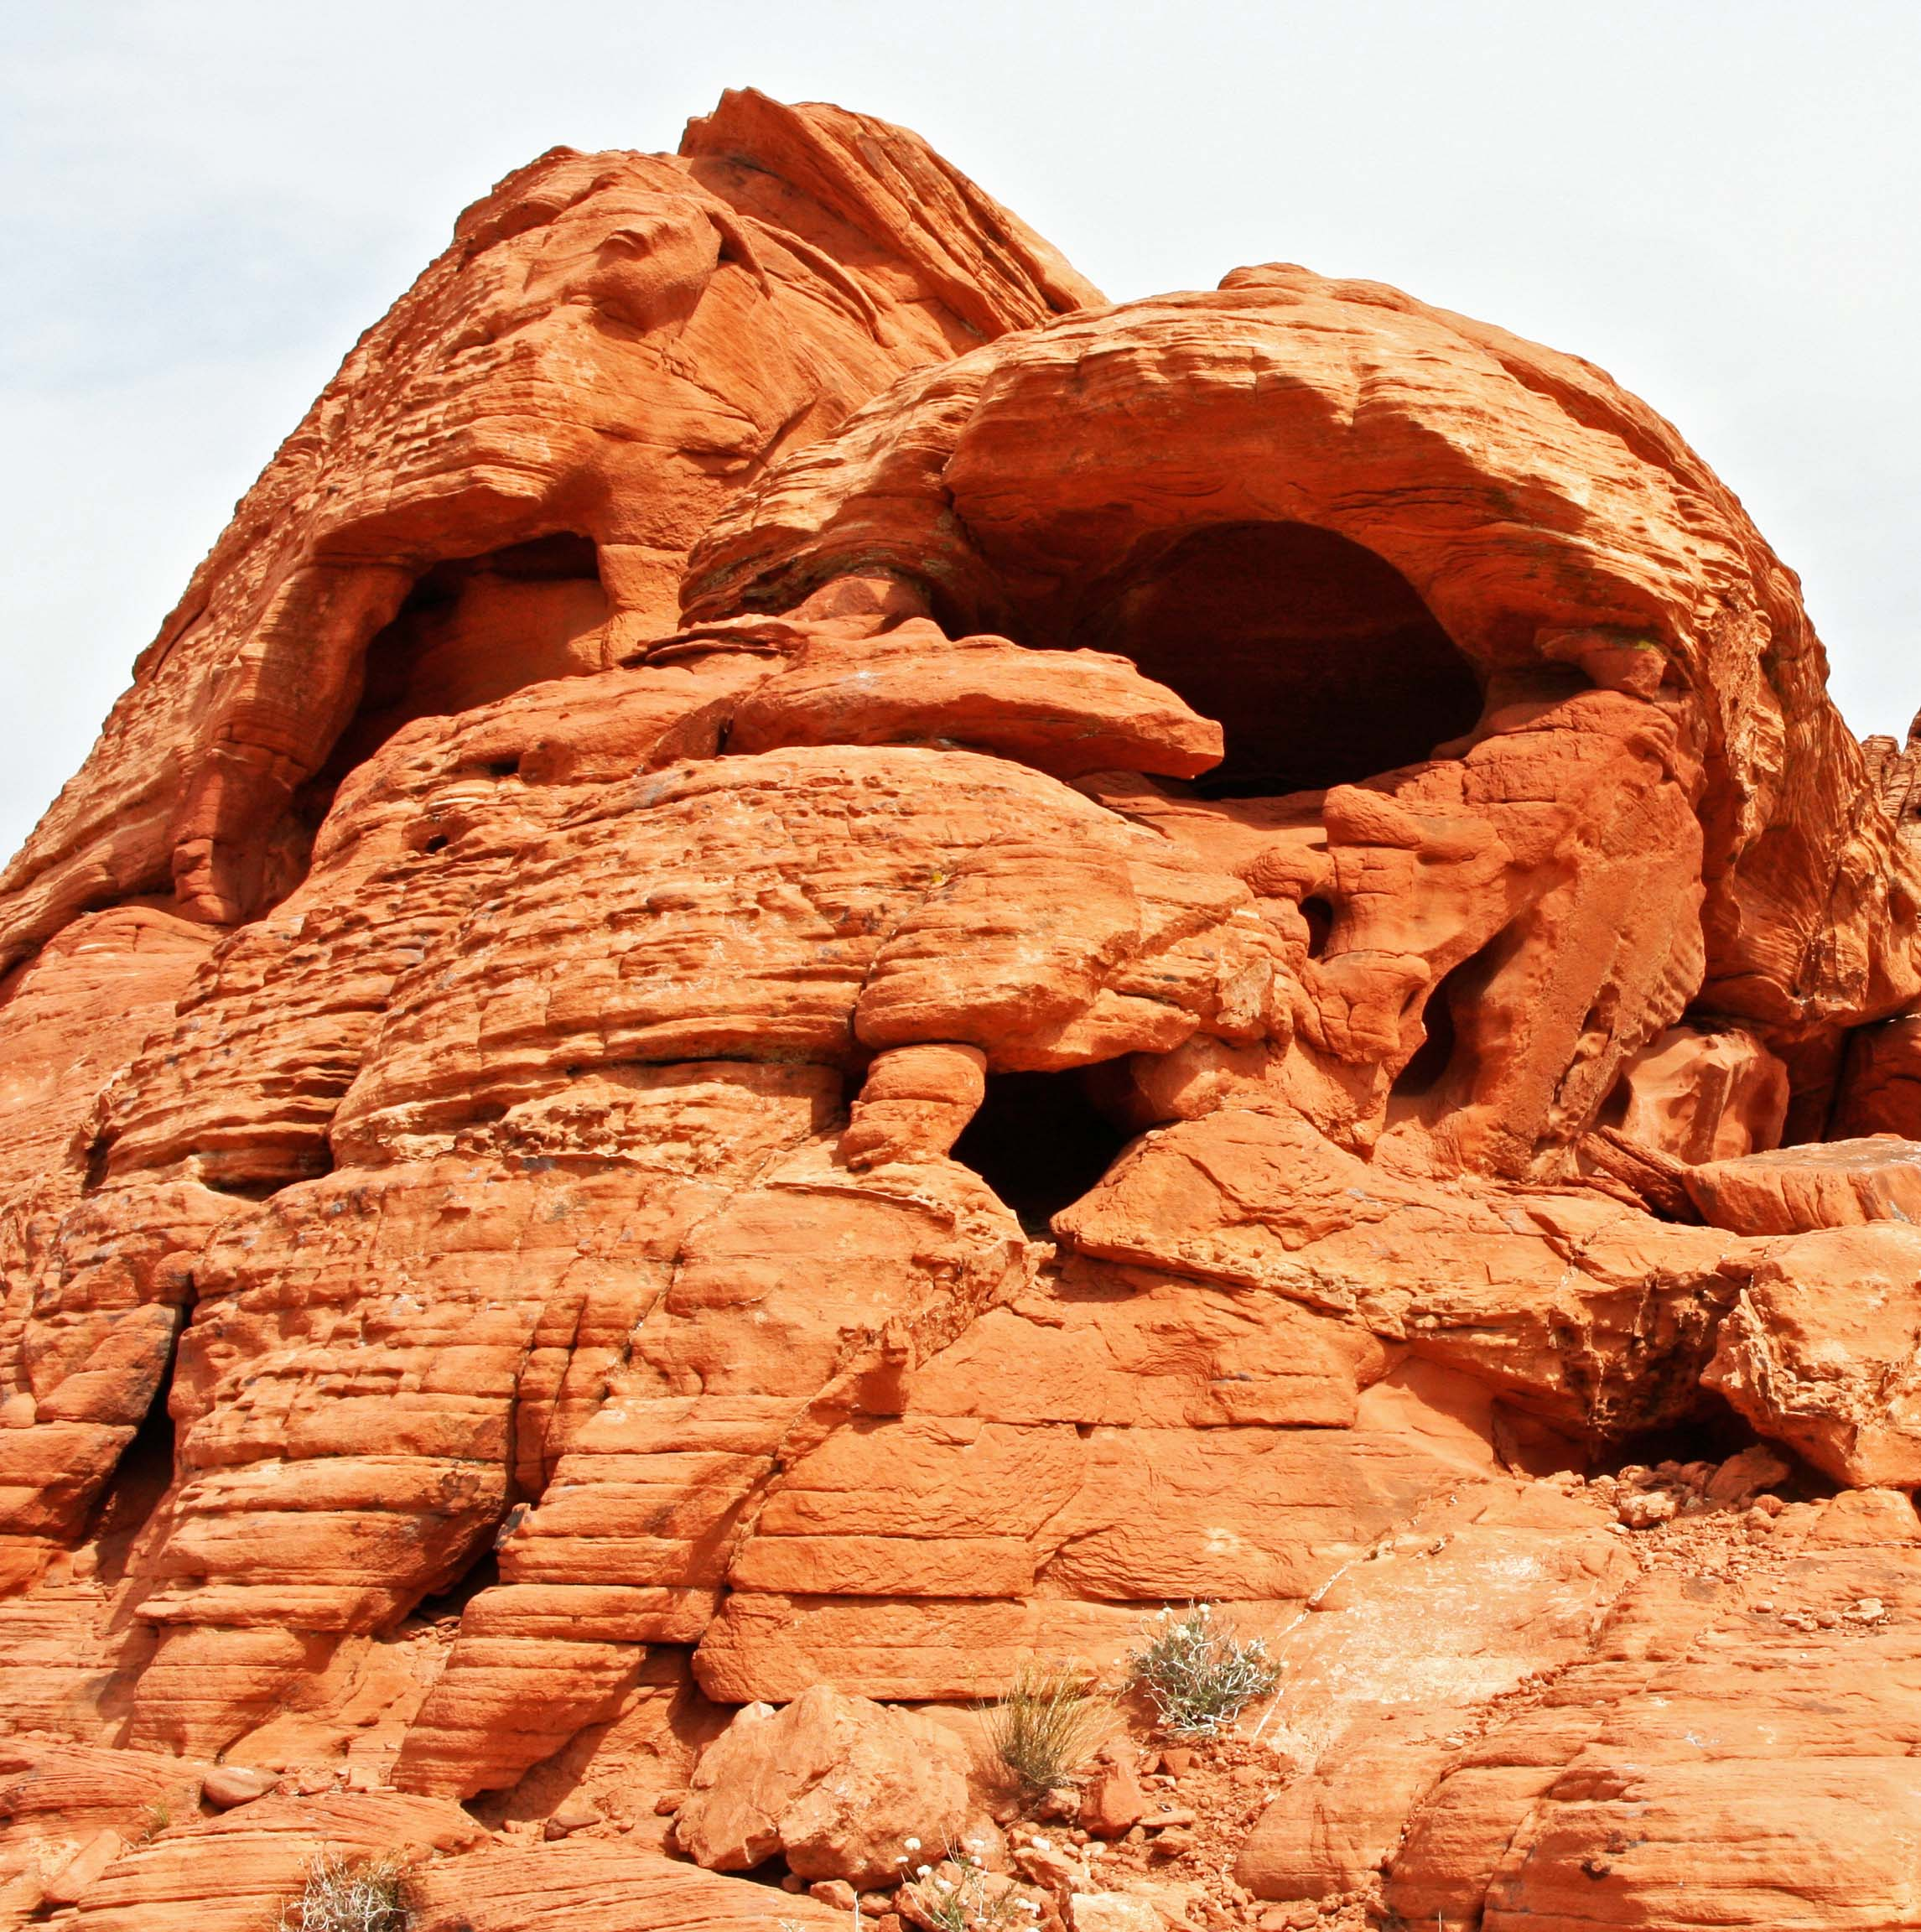 The Mystery and Beauty of Deserts: The Valley of Fire ...